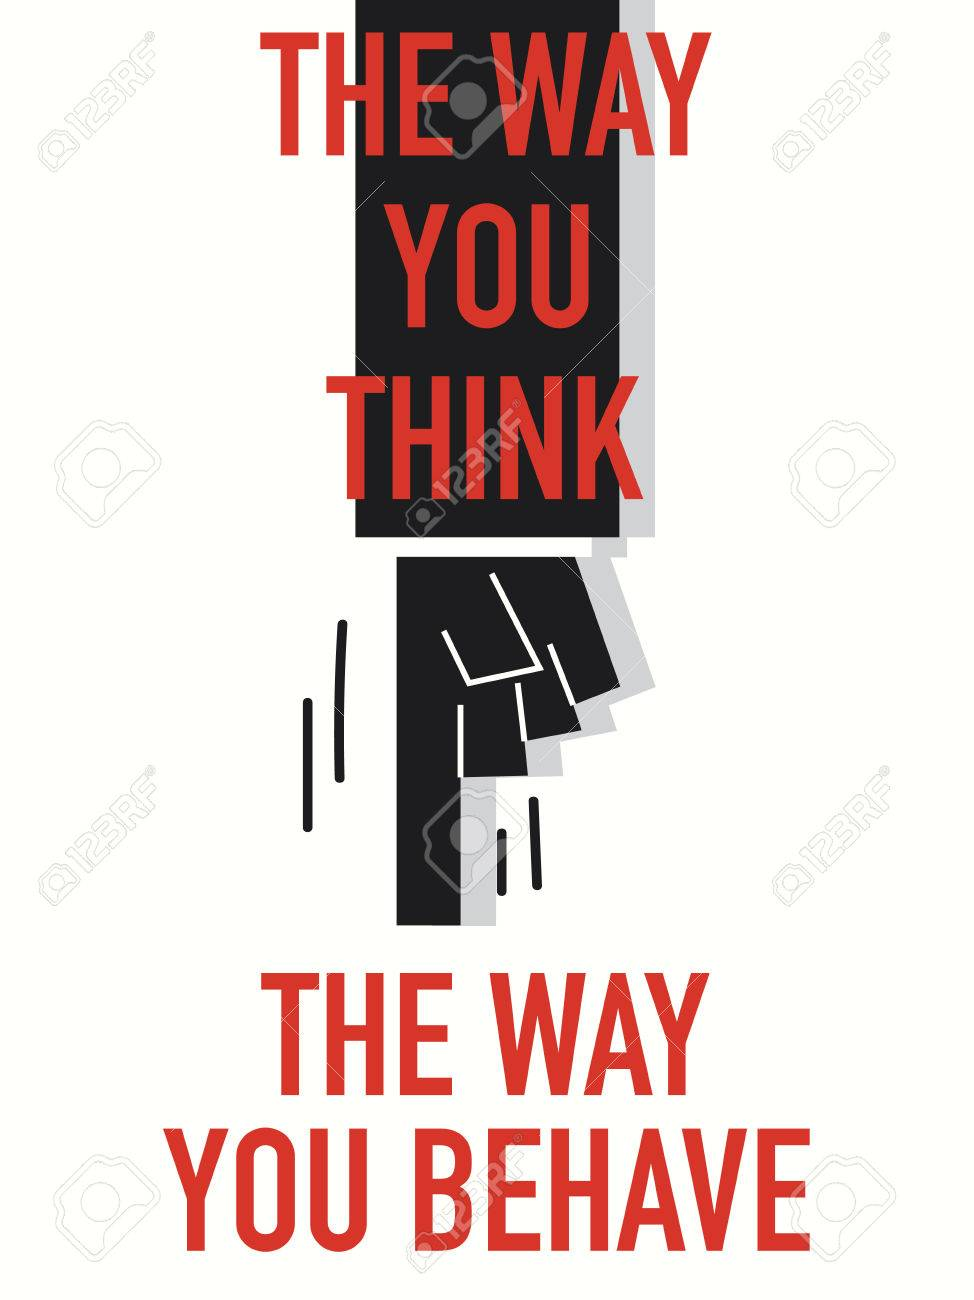 words the way you think the way you behave royalty free cliparts